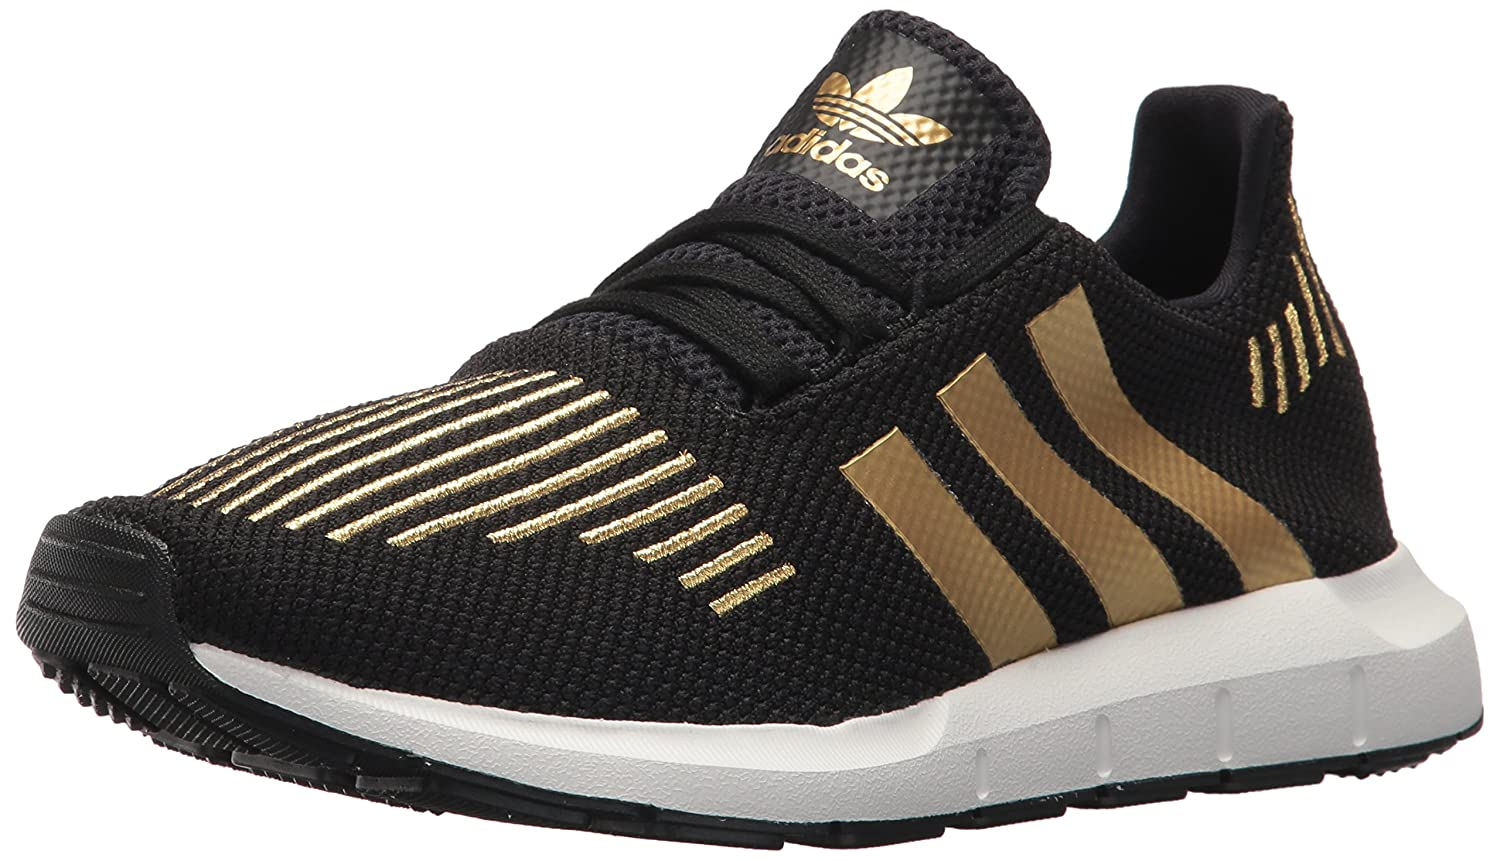 adidas Originals Women's Swift Run W B06XPQS6MF 9.5 B(M) US|Black/Gold Metallic/White